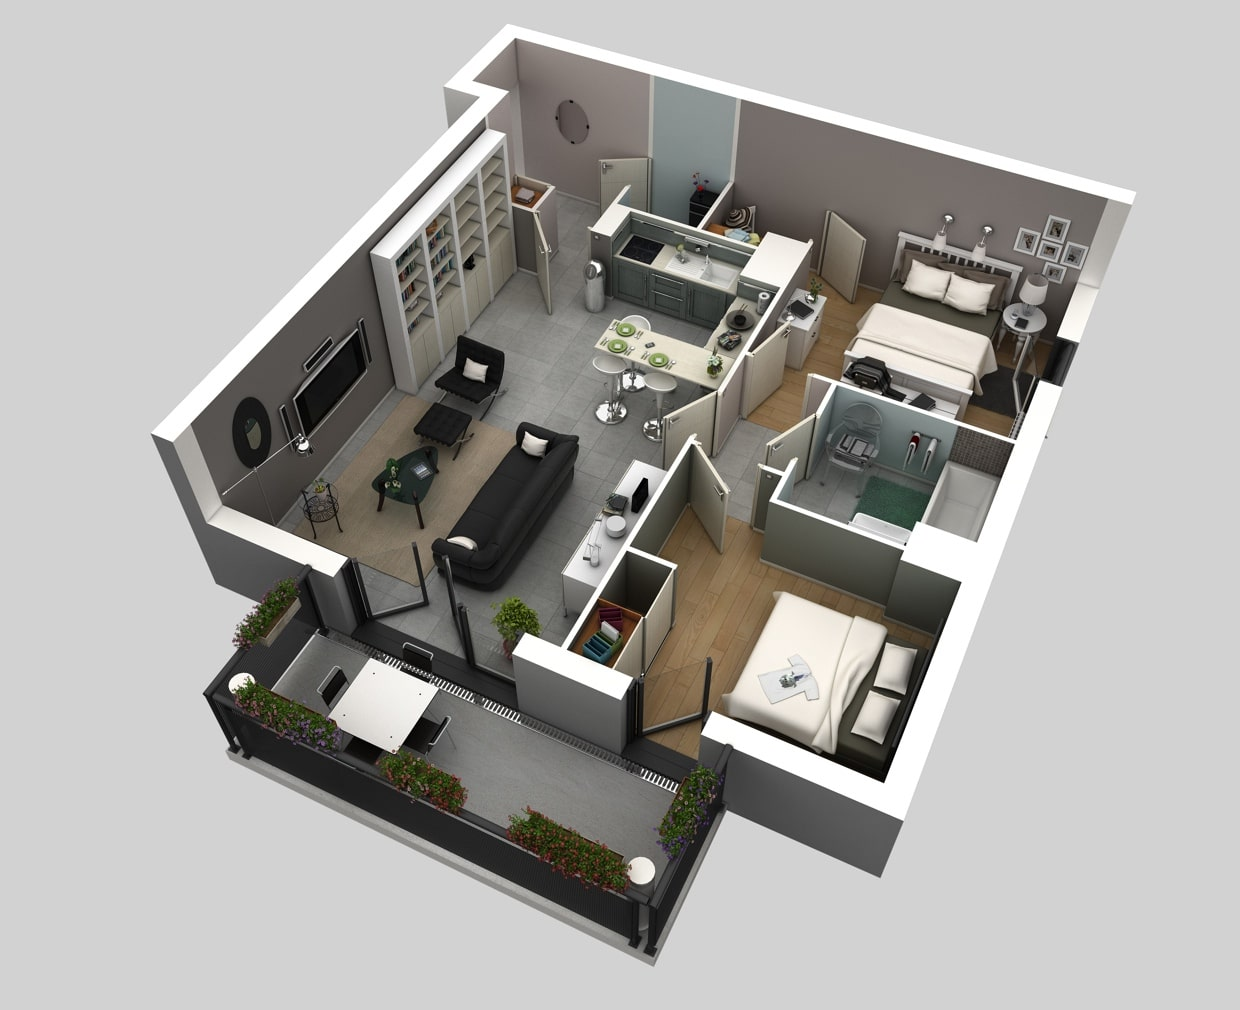 Small Kitchen Plans moreover Elegant Colored House Floor Plans Golden Shelter Apartment Floor Plans Diwfly X At Apartment Floor Plans moreover School Buses Into Homes 205265 in addition Master Bathroom Floor Plans together with Powder Room Floor Plans. on small bathroom floor plans dimensions